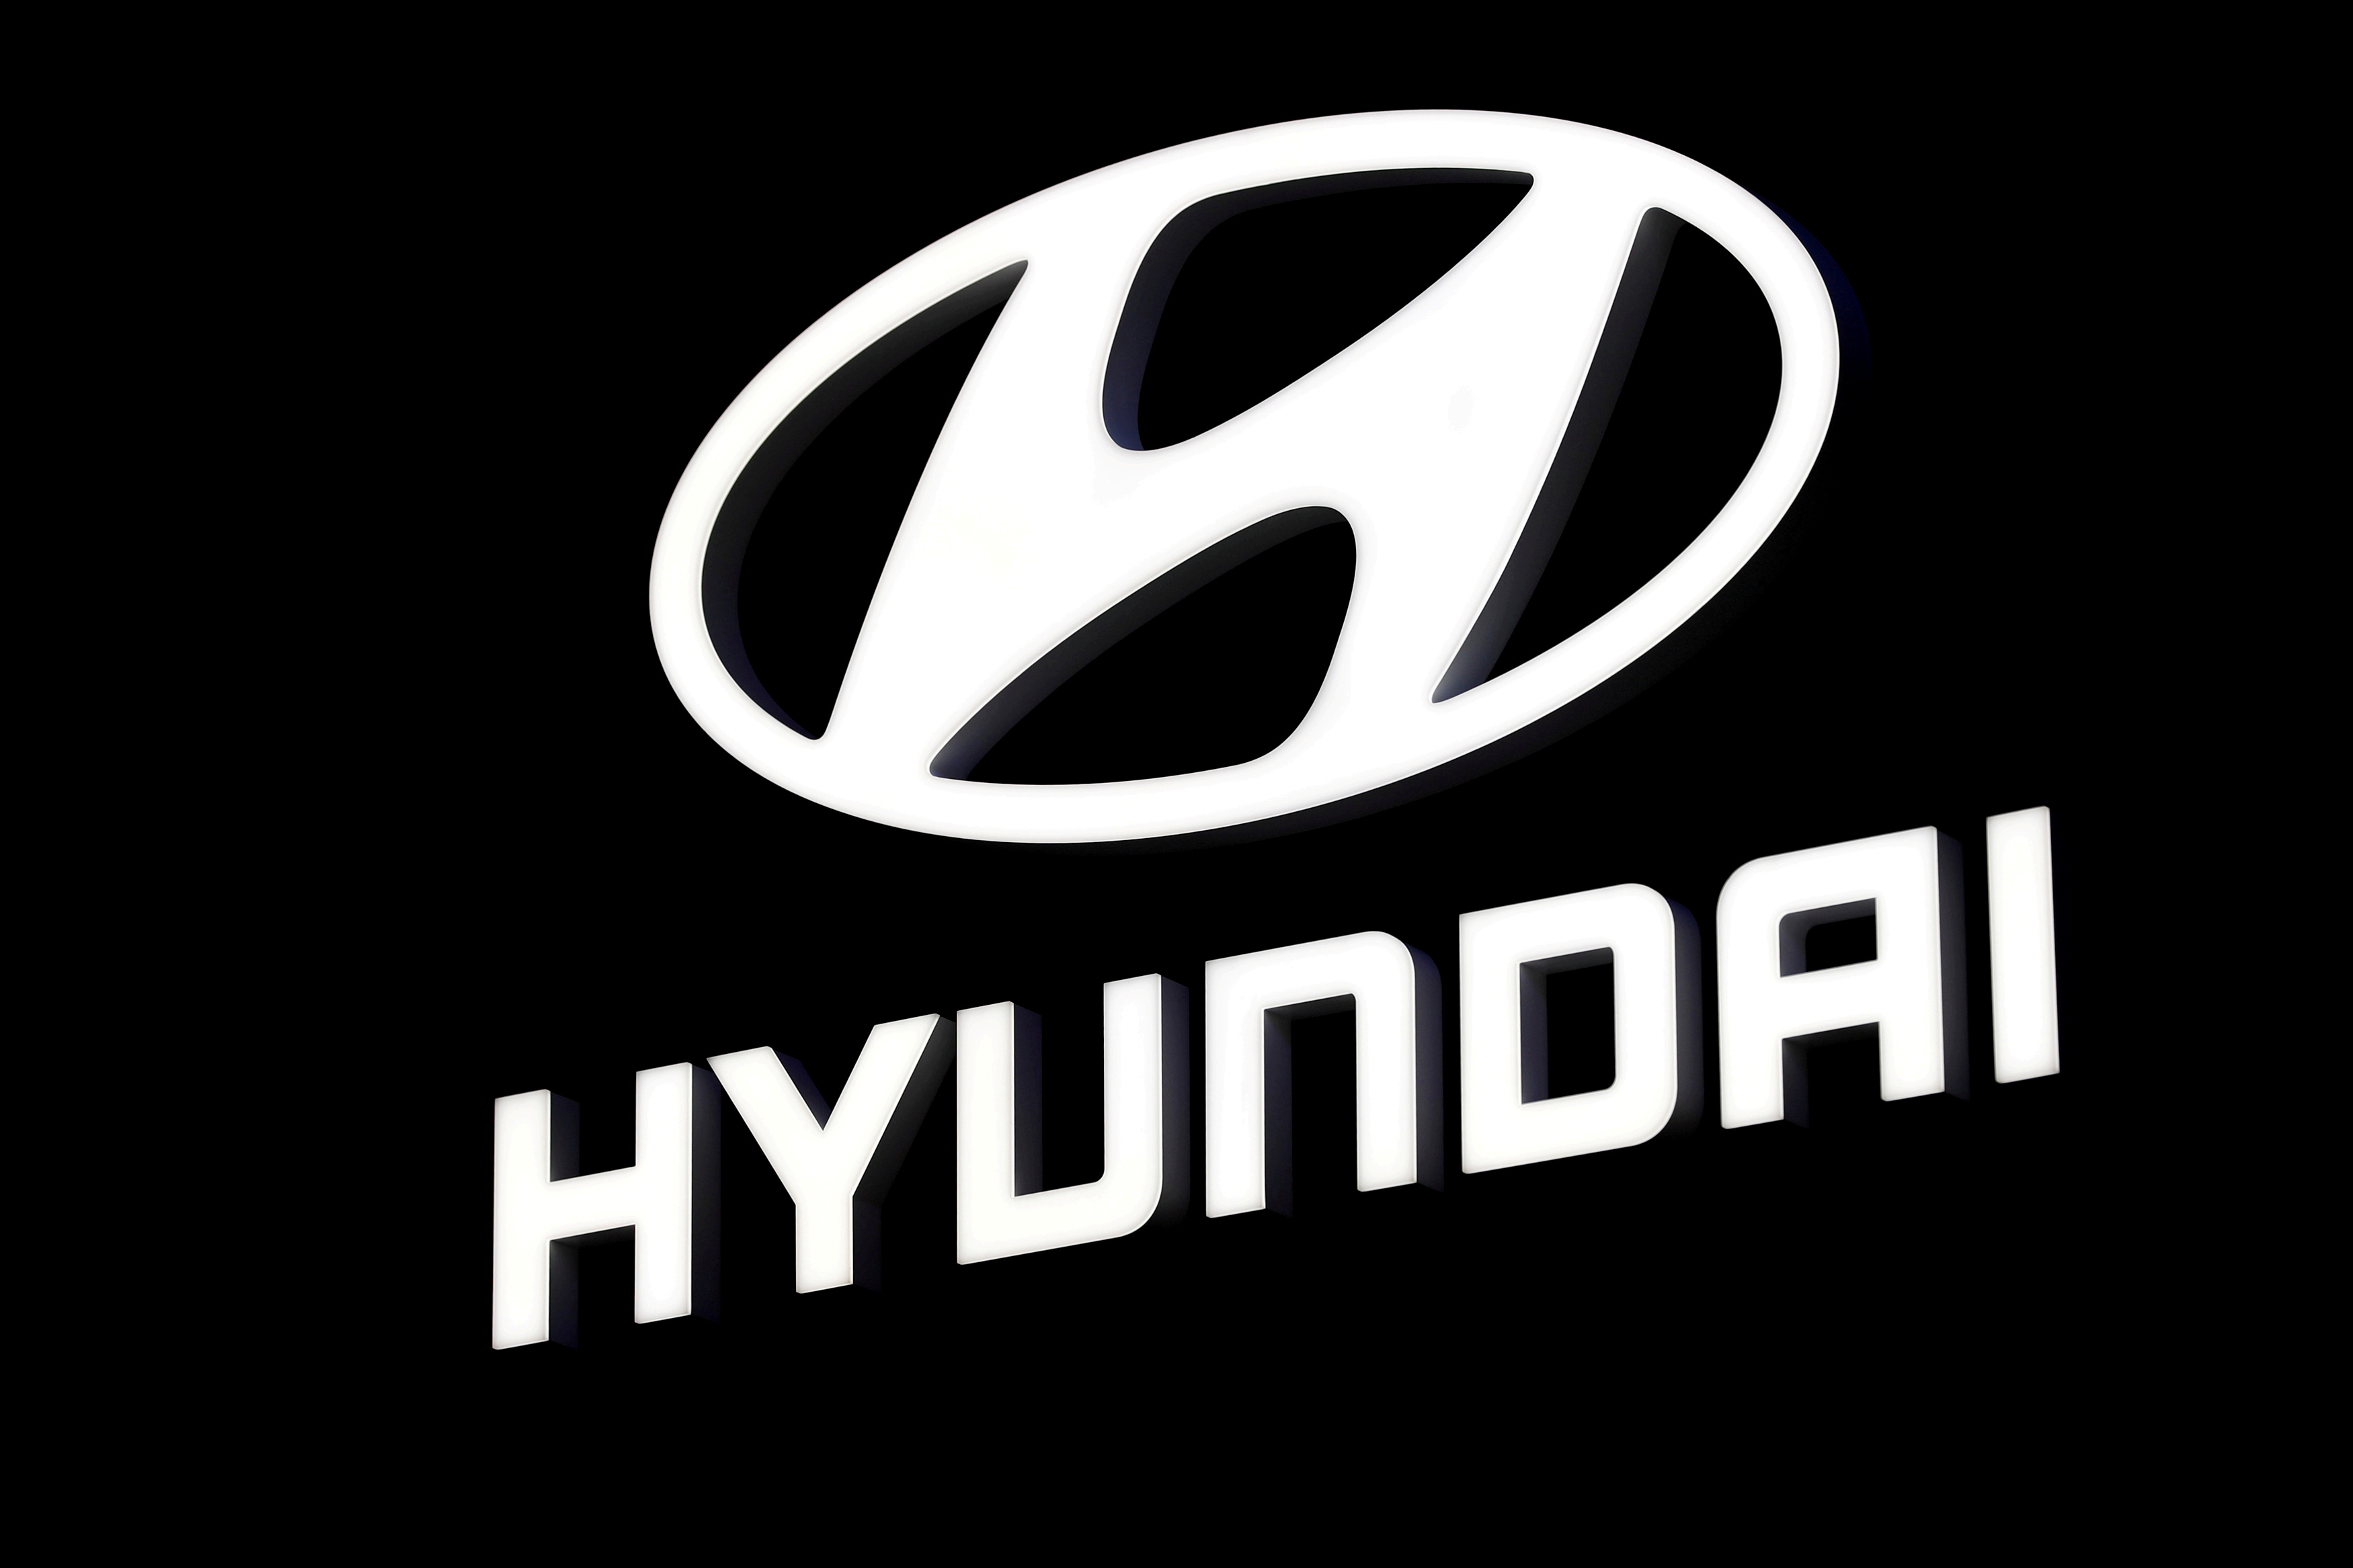 The Hyundai booth displays the company logo at the North American International Auto Show in Detroit, Michigan, U.S. January 16, 2018.  REUTERS/Jonathan Ernst/File Photo/File Photo